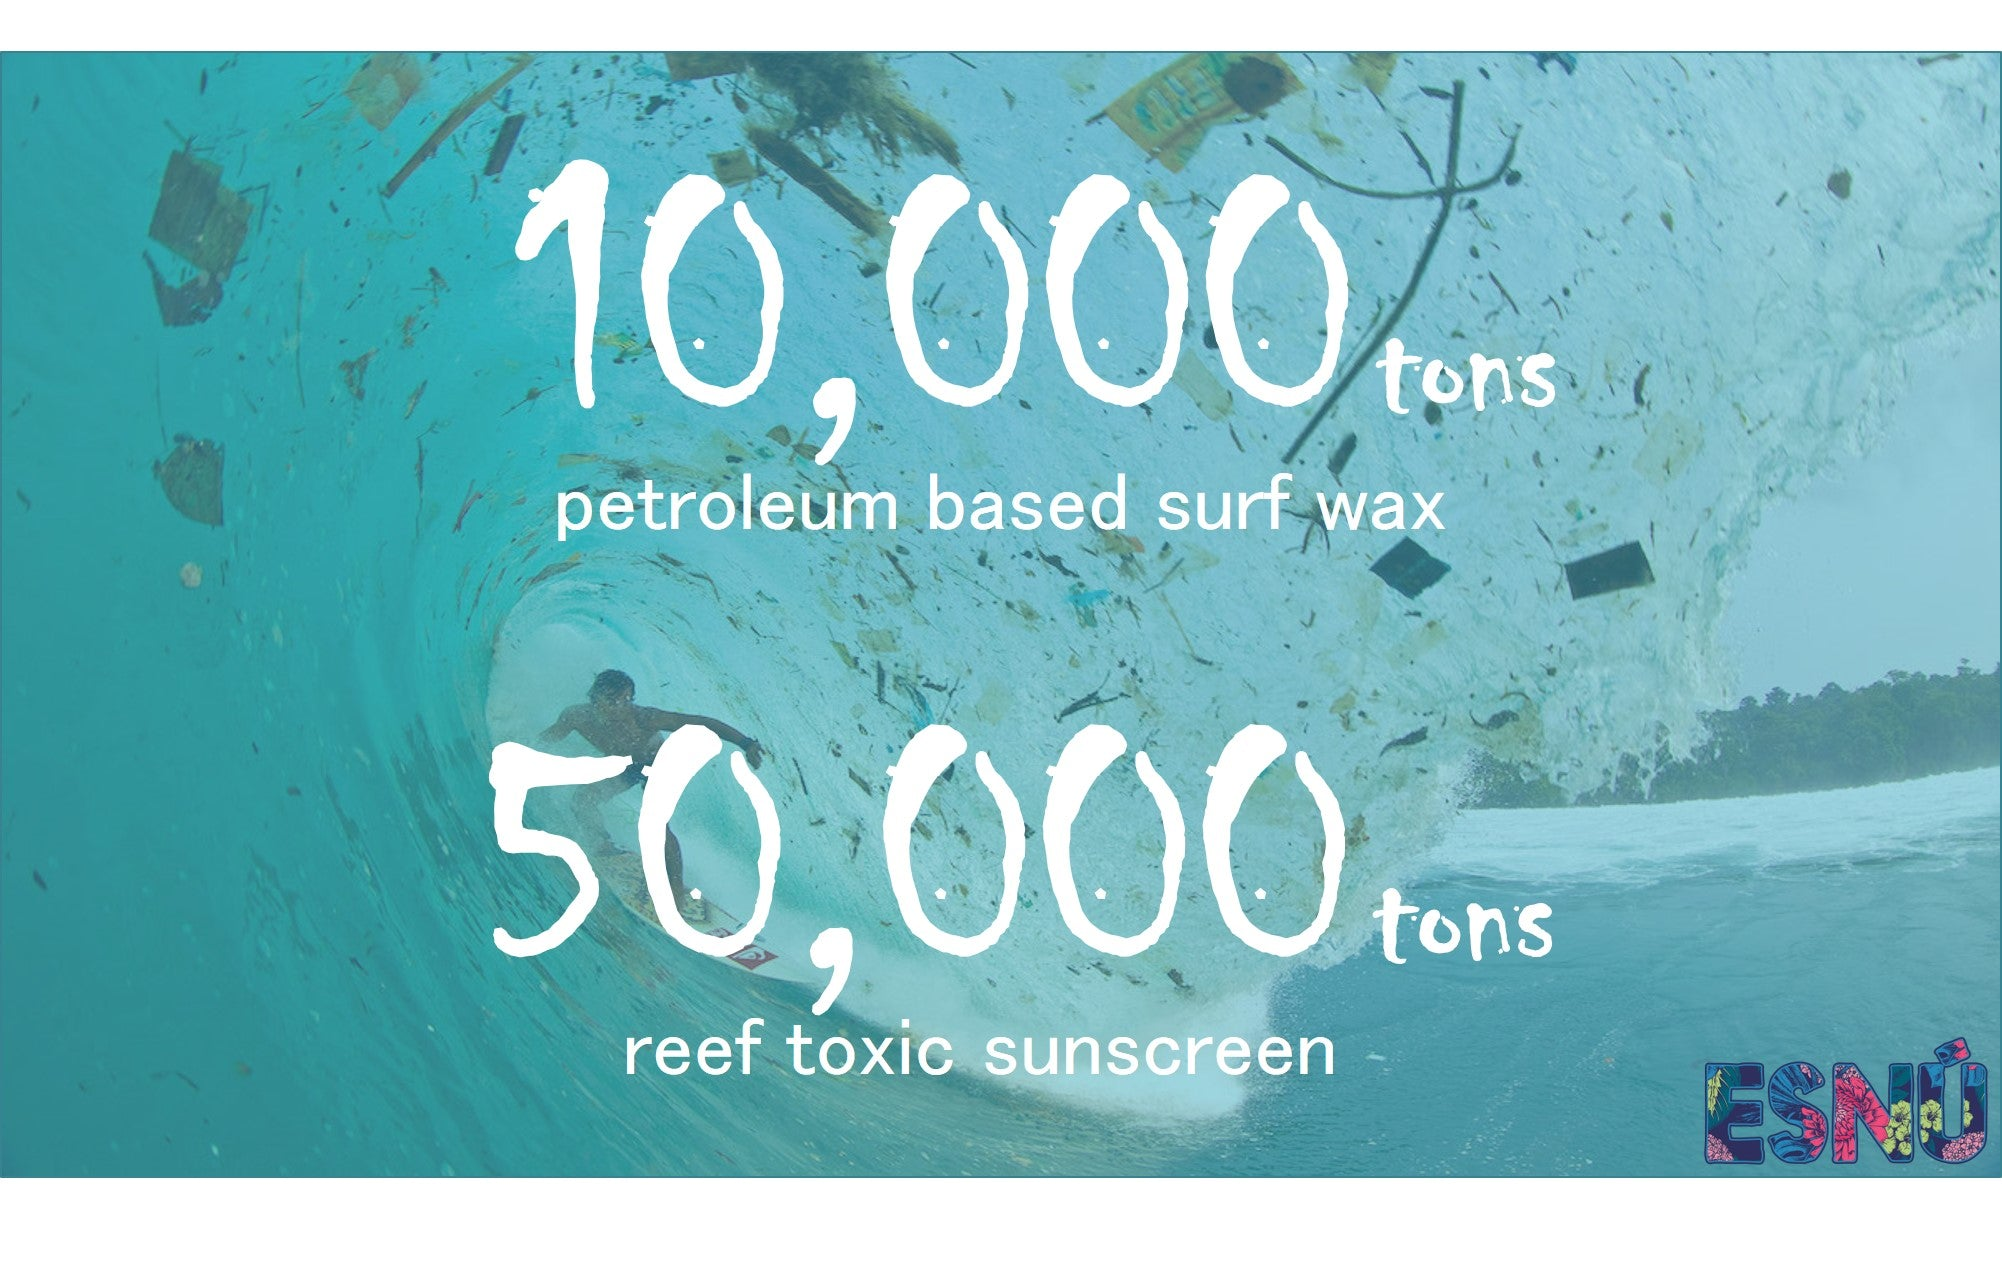 toxic sunscreen surf wax world facts